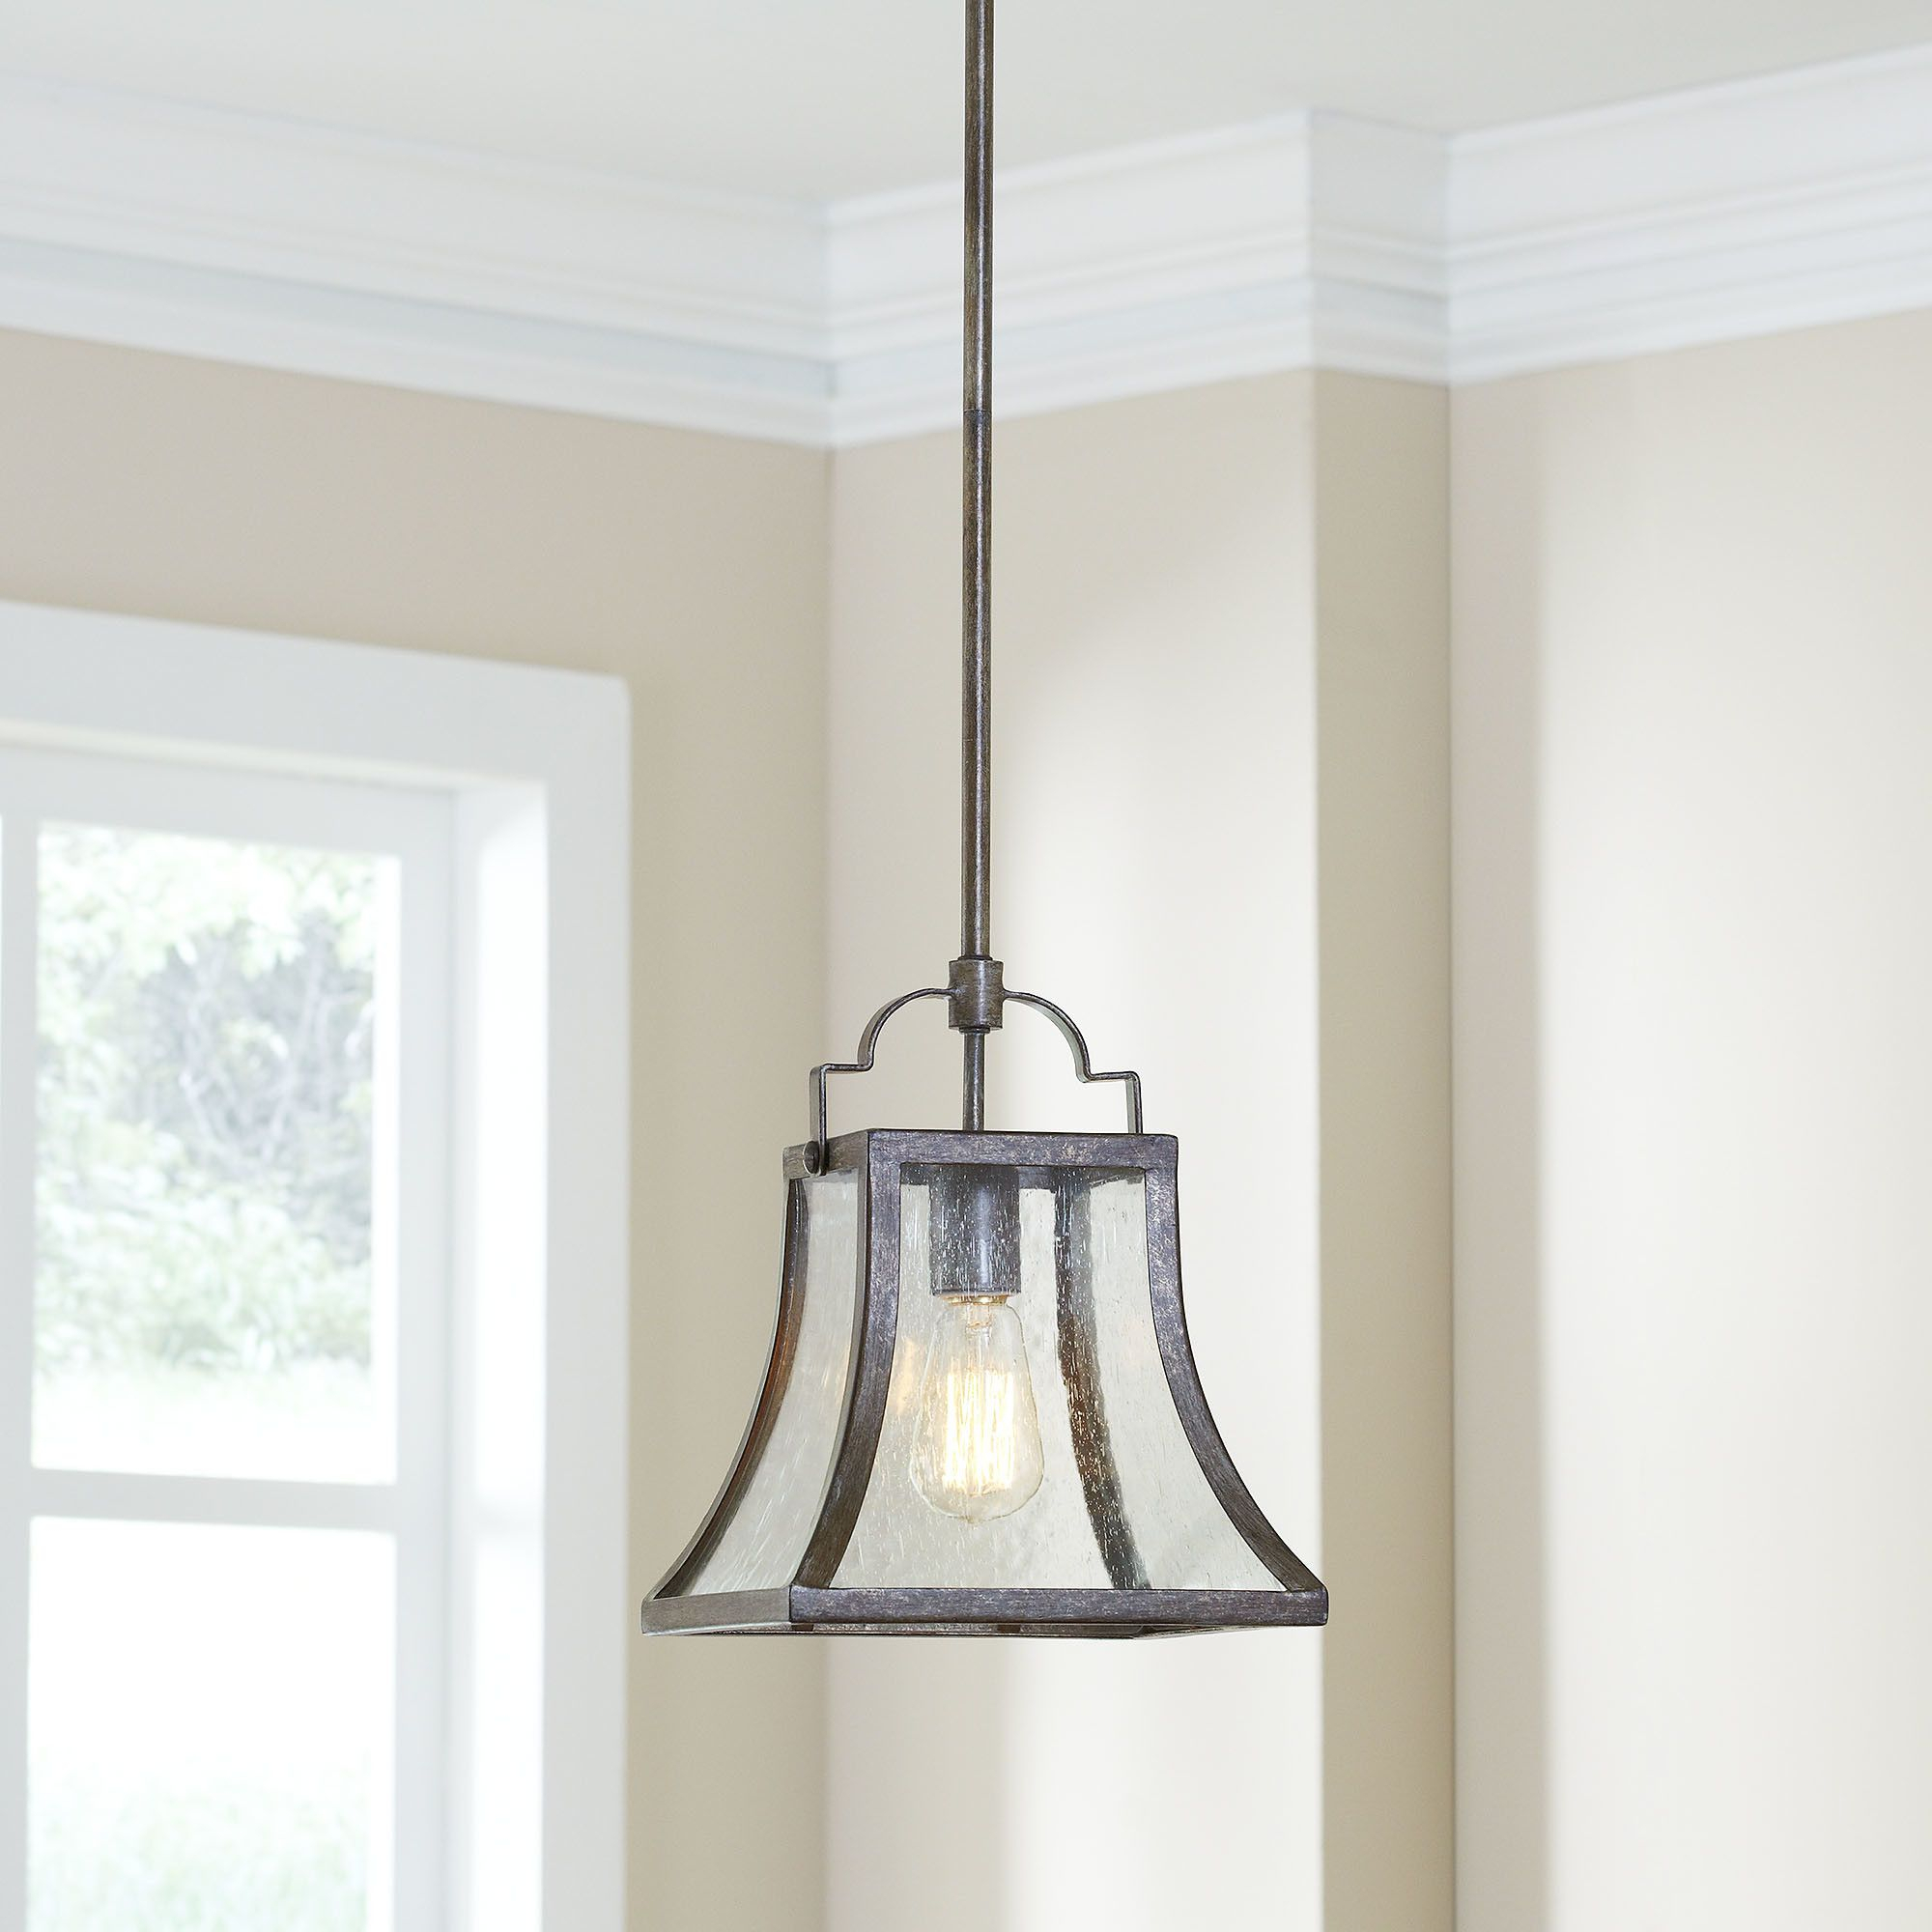 Birch Lane Hawkesbury 1 Light Foyer Mini Pendant | Lights for Armande 3-Light Lantern Geometric Pendants (Image 8 of 30)